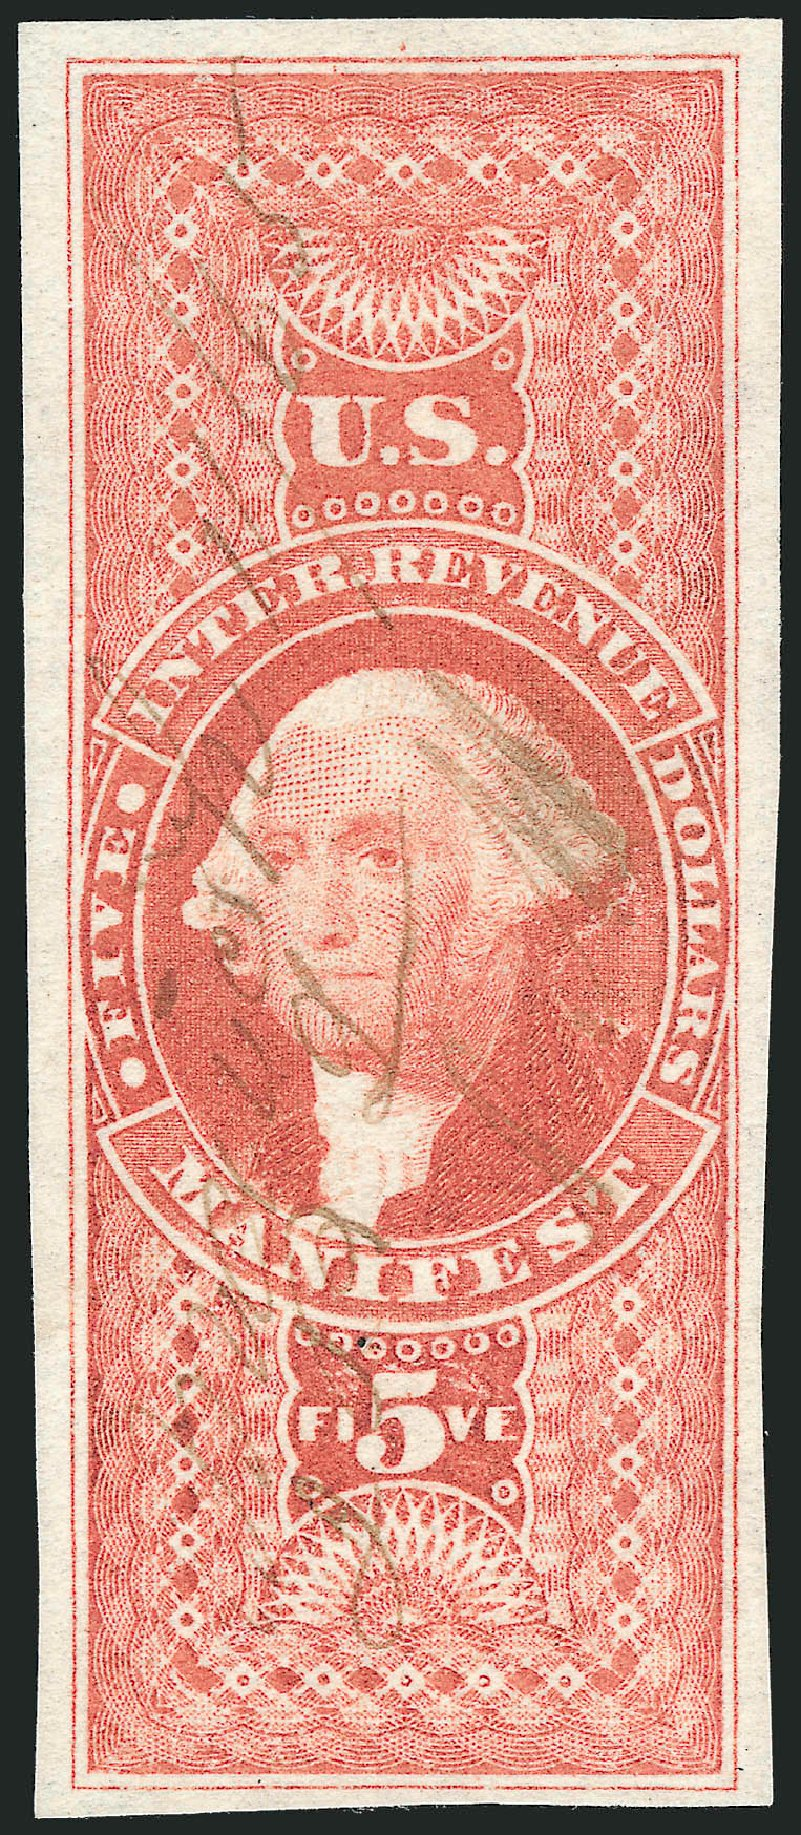 Values of US Stamp Scott Catalogue #R90 - 1862 US$5.00 Revenue Manifest. Robert Siegel Auction Galleries, Nov 2011, Sale 1015, Lot 27